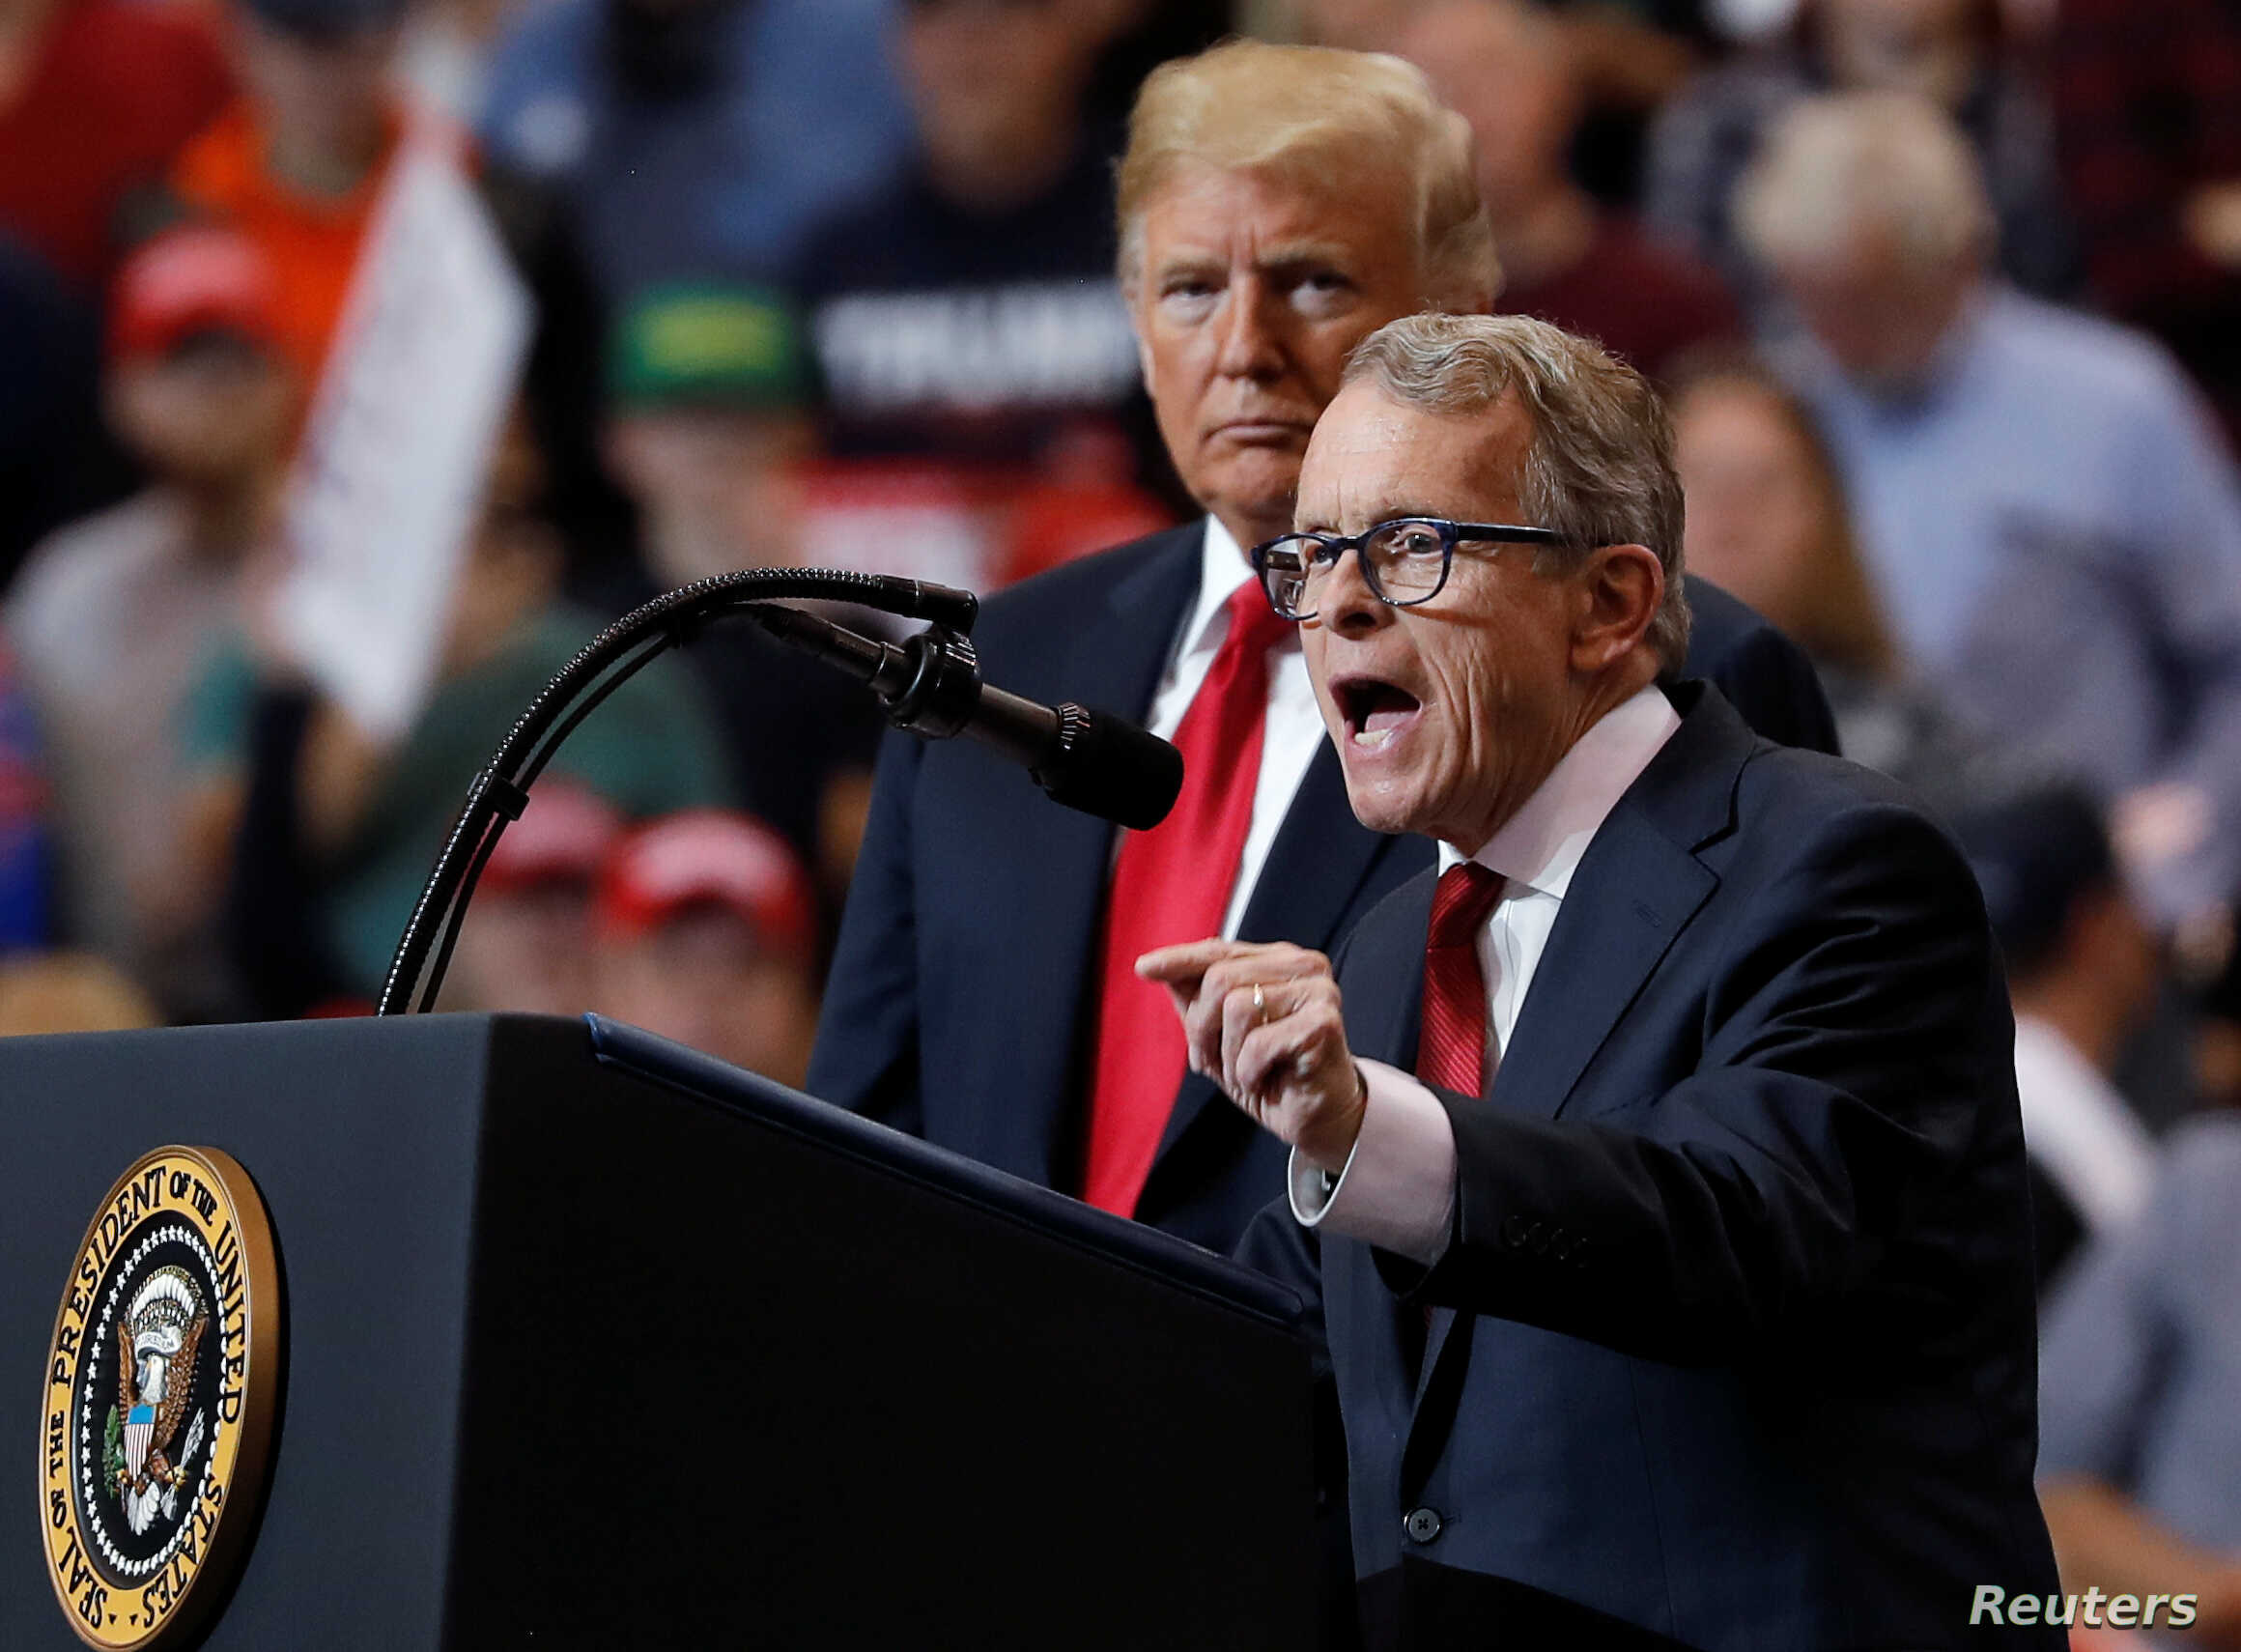 U.S. President Donald Trump listens as Ohio gubernatorial nominee and Ohio Attorney General Mike Dewine speaks during a campaign rally in Cleveland, Ohio., Nov. 5, 2018.